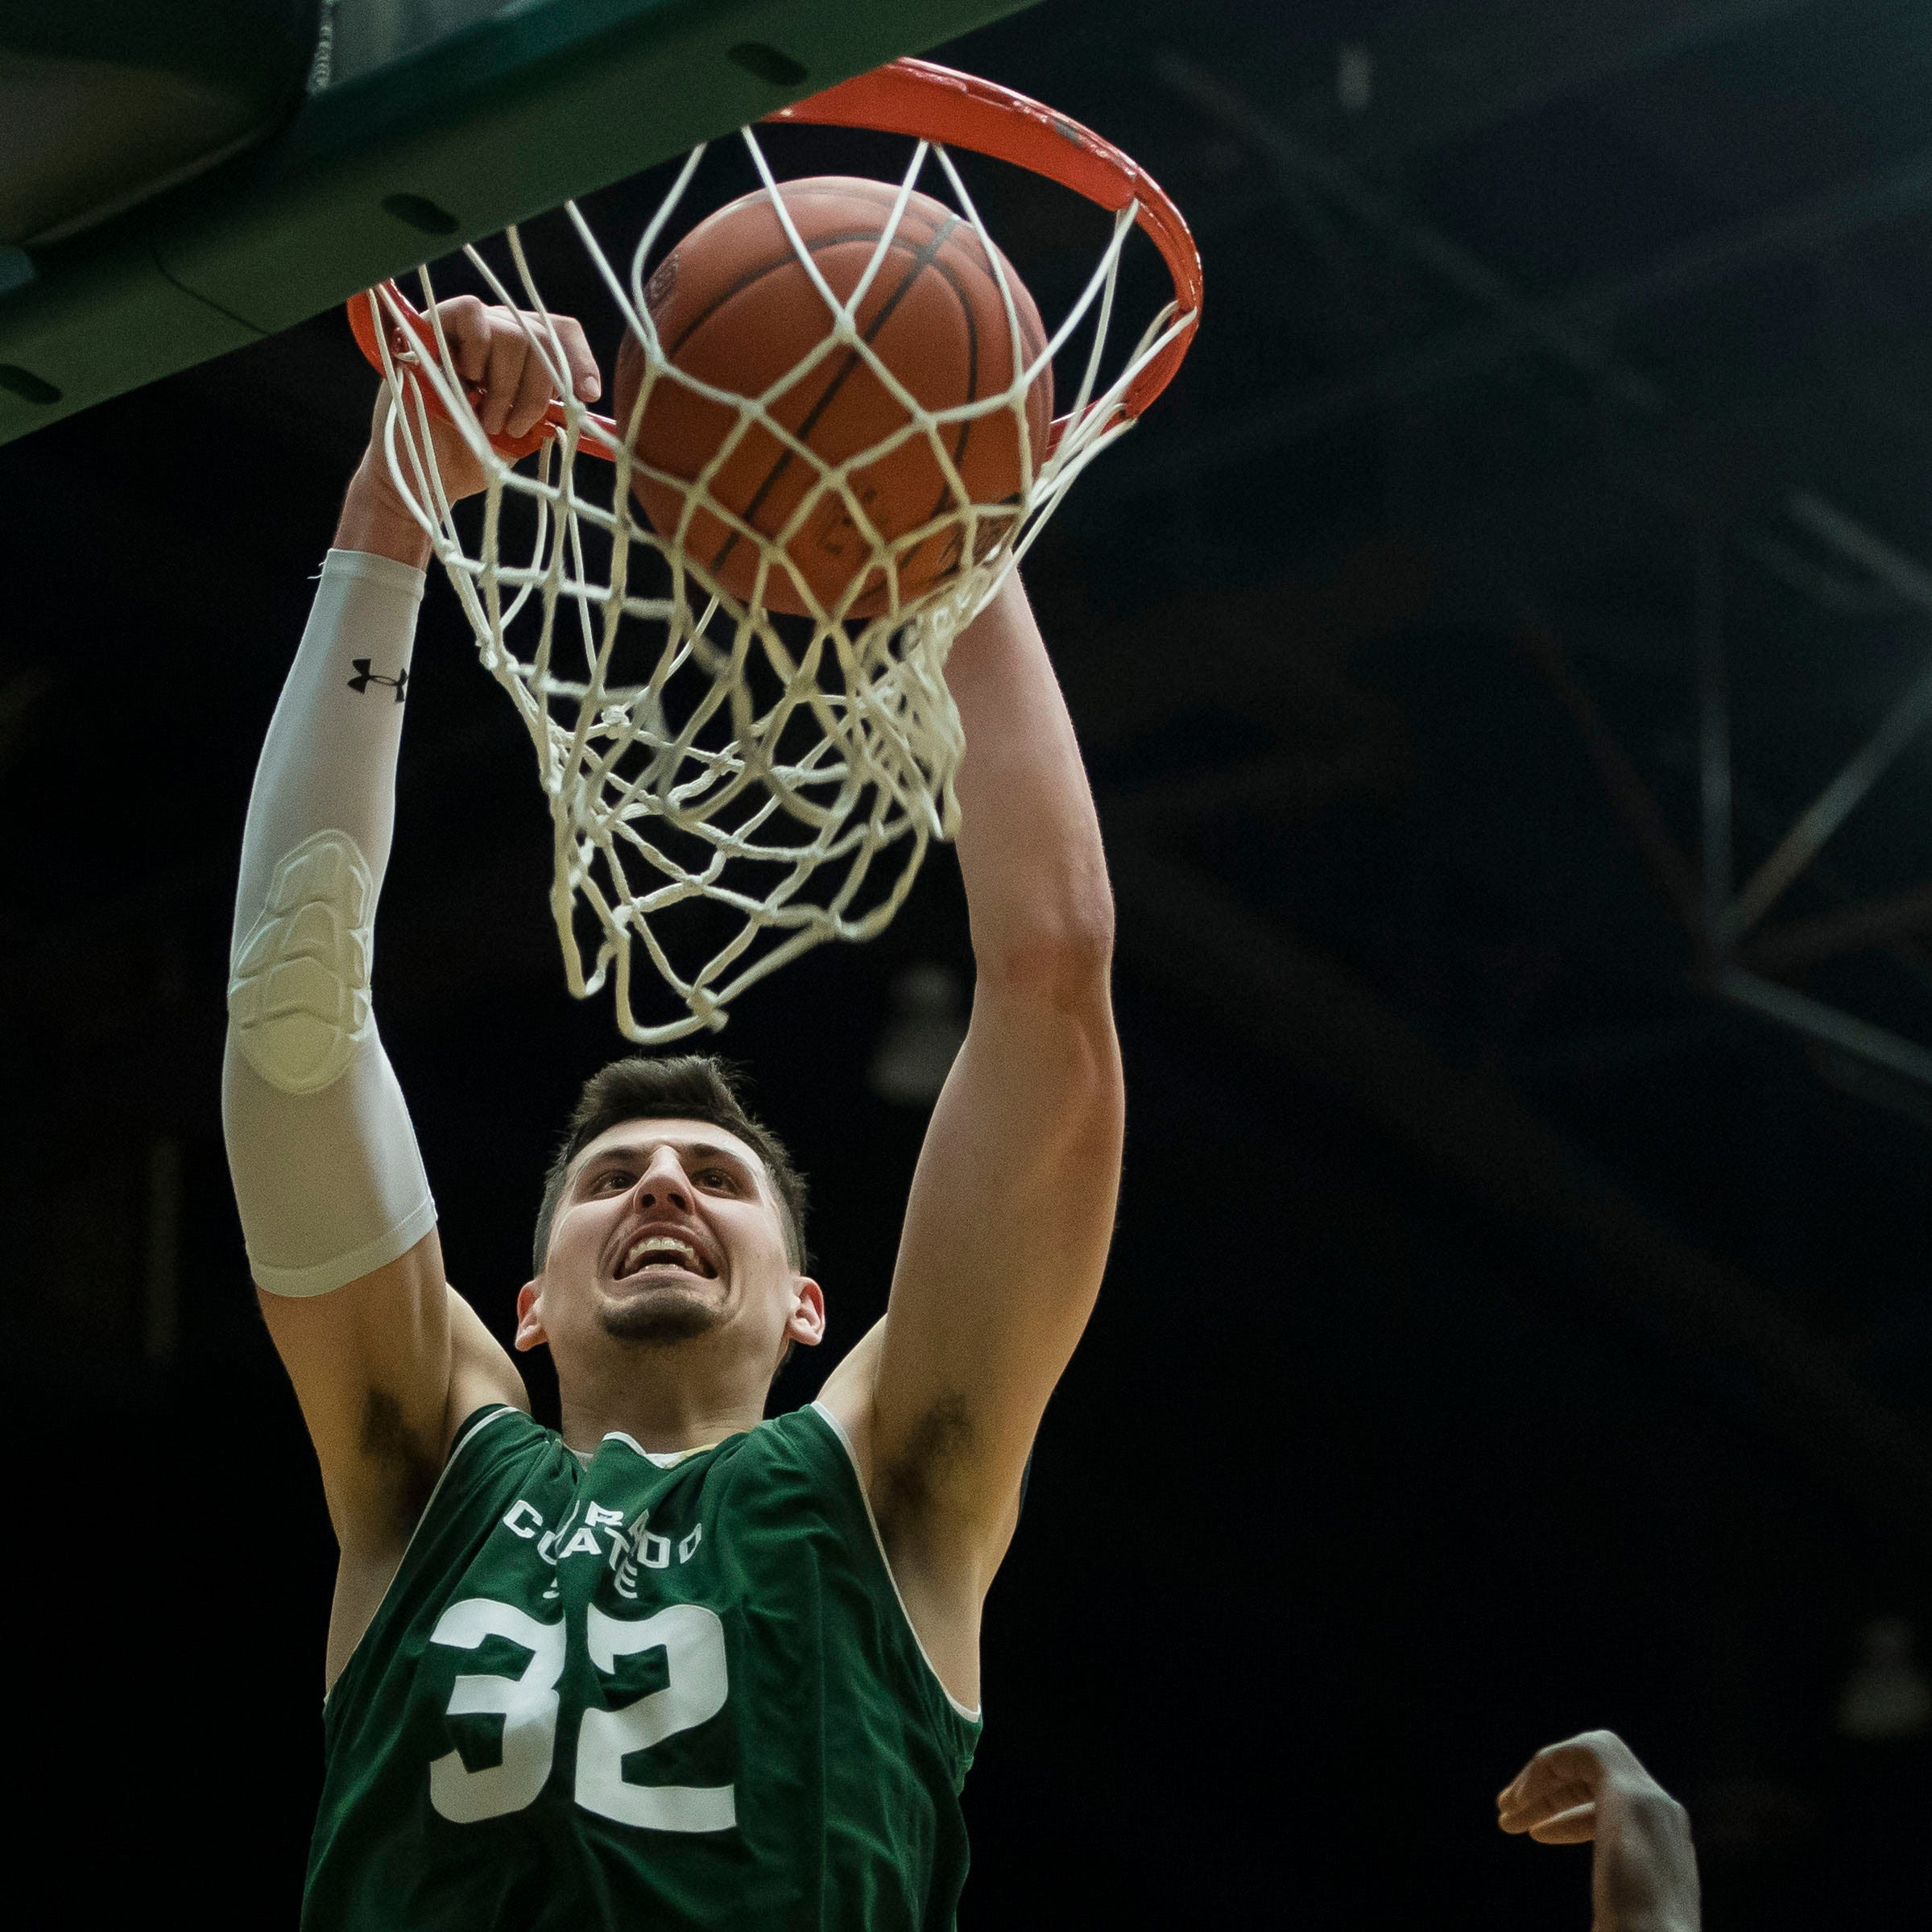 Colorado State's Nico Carvacho named all-Mountain West by the league's media members